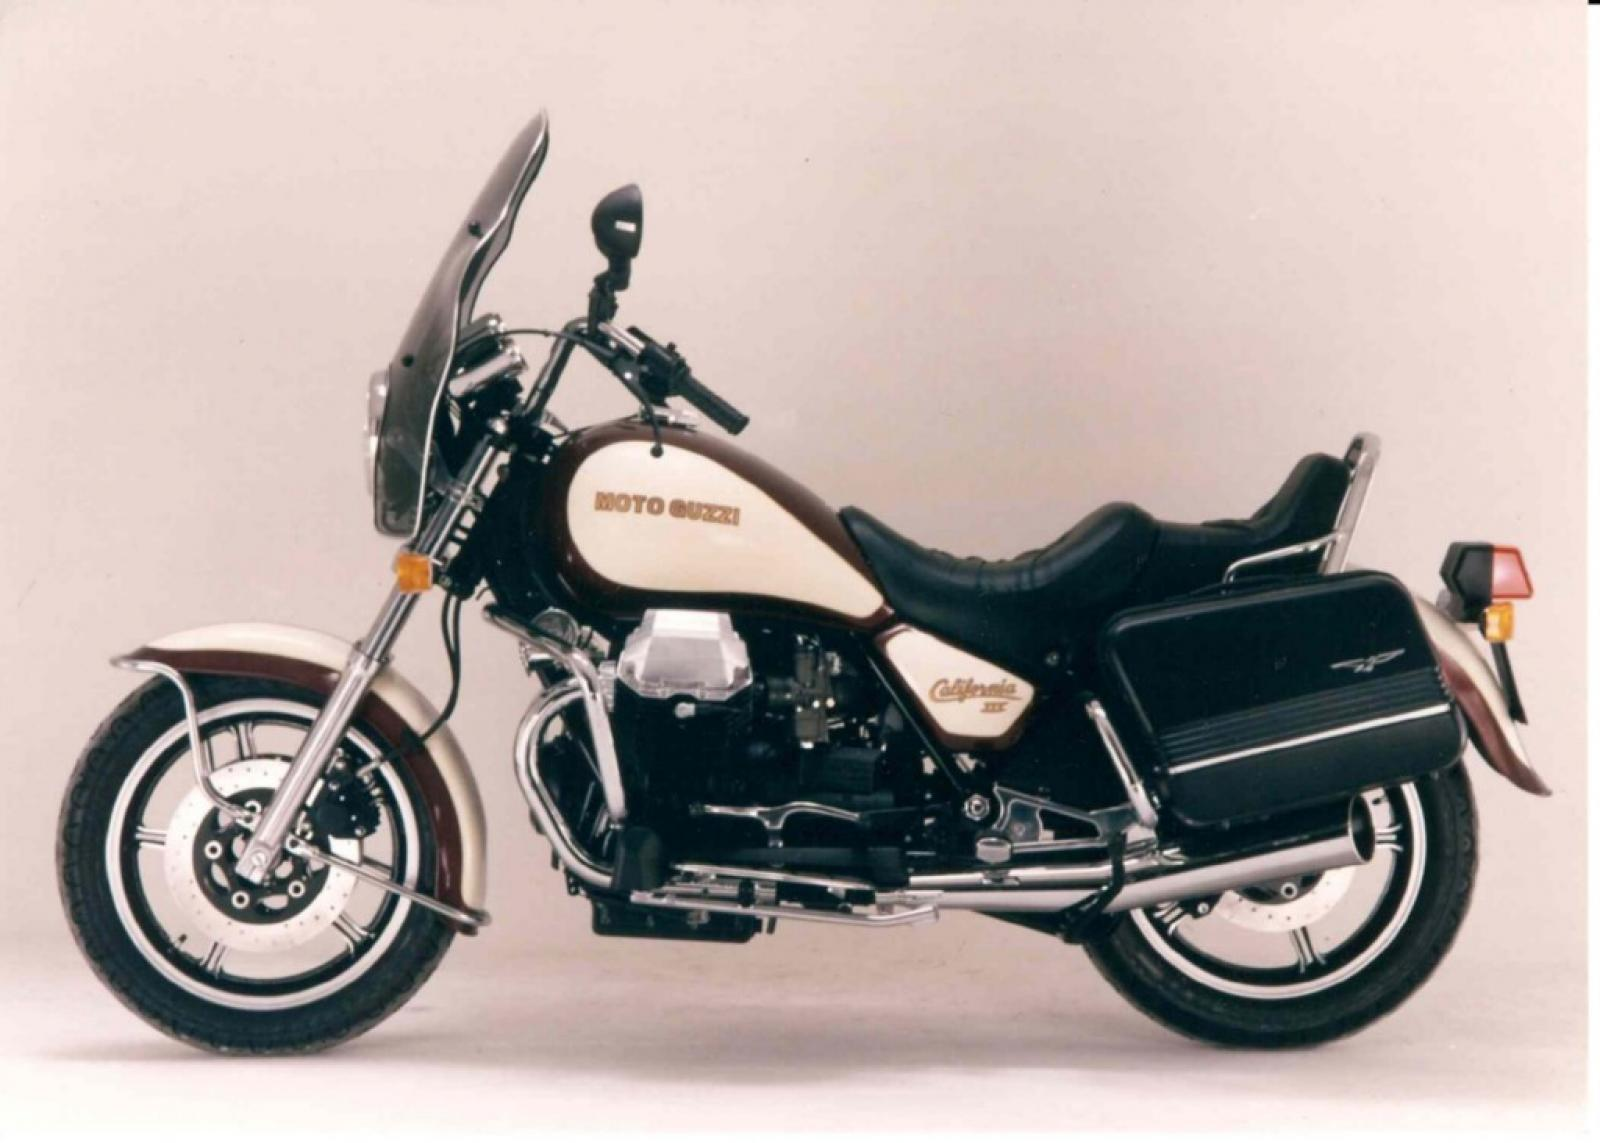 Moto Guzzi California III 1993 images #108661